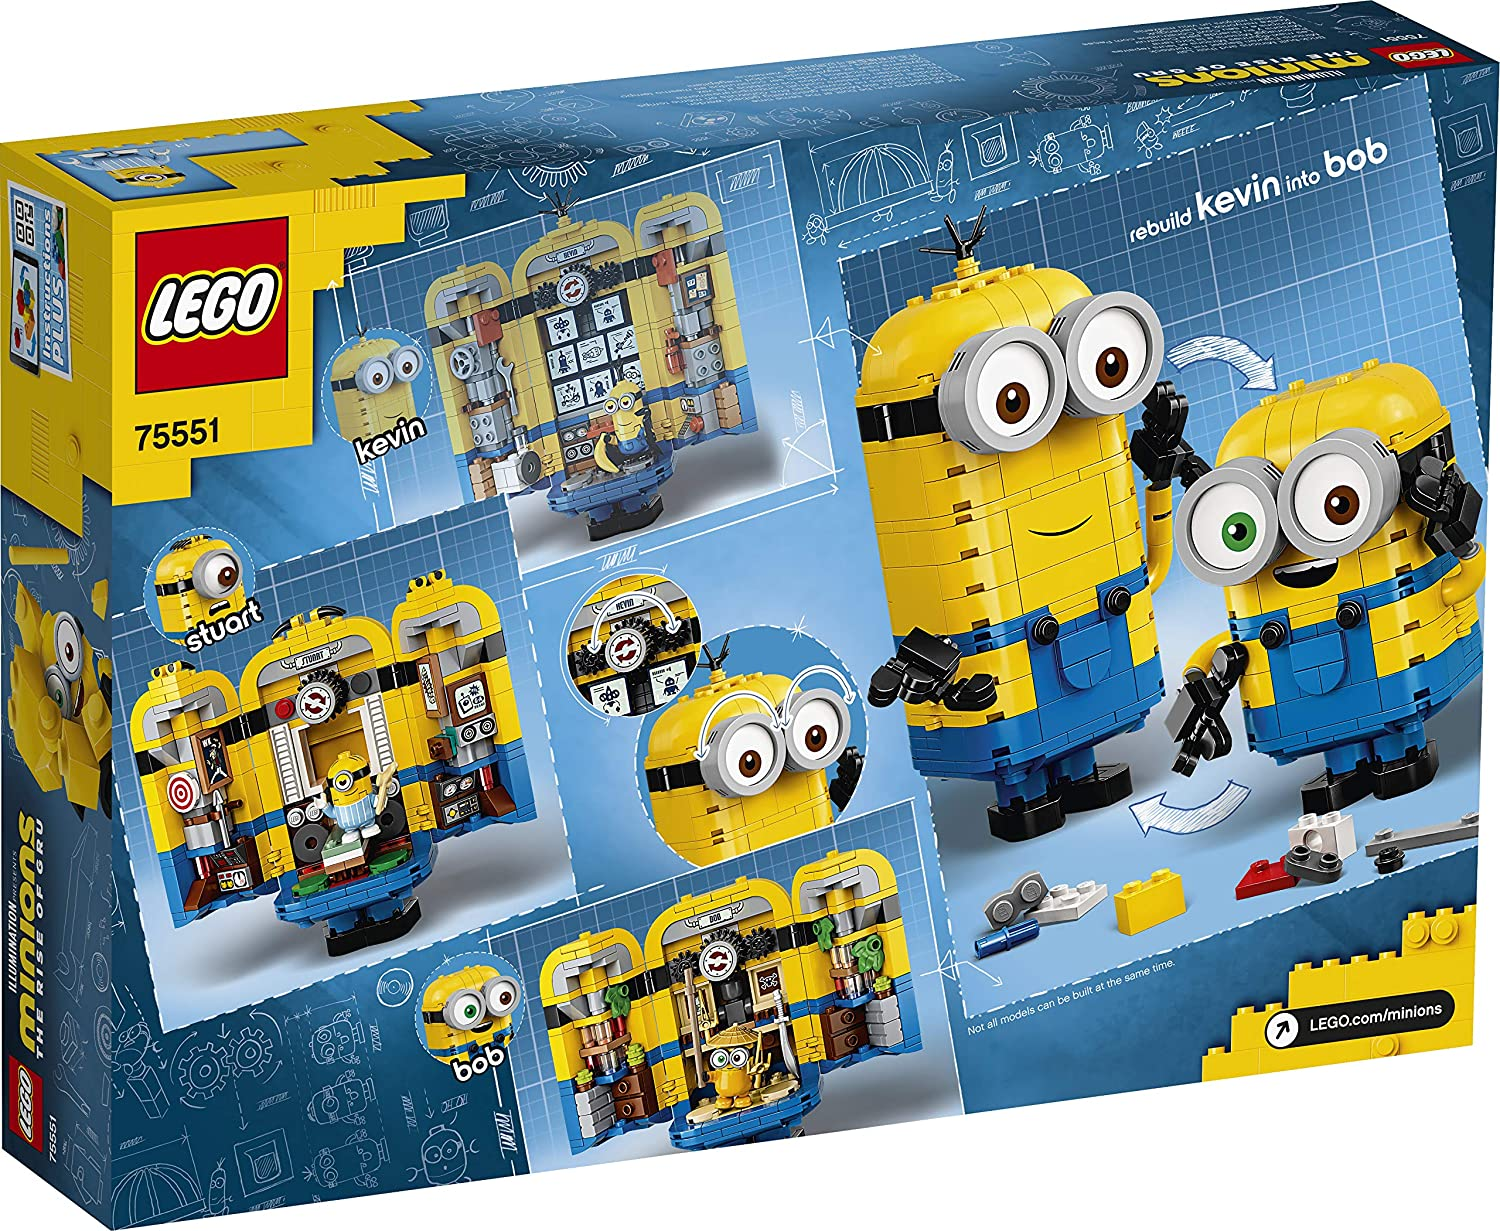 LEGO Minions Brick-Built Minions and Their Lair 75551 Building Kit